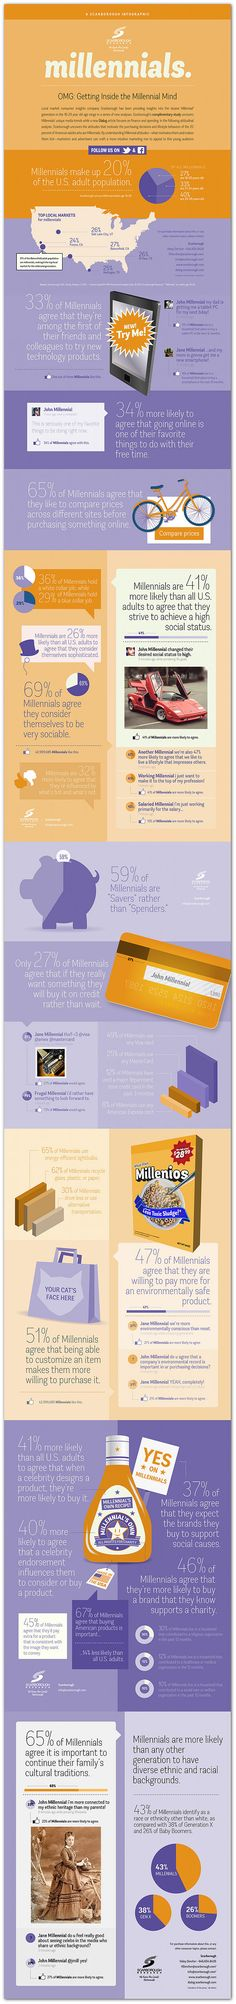 Infographic: Inside the mind of a millennial